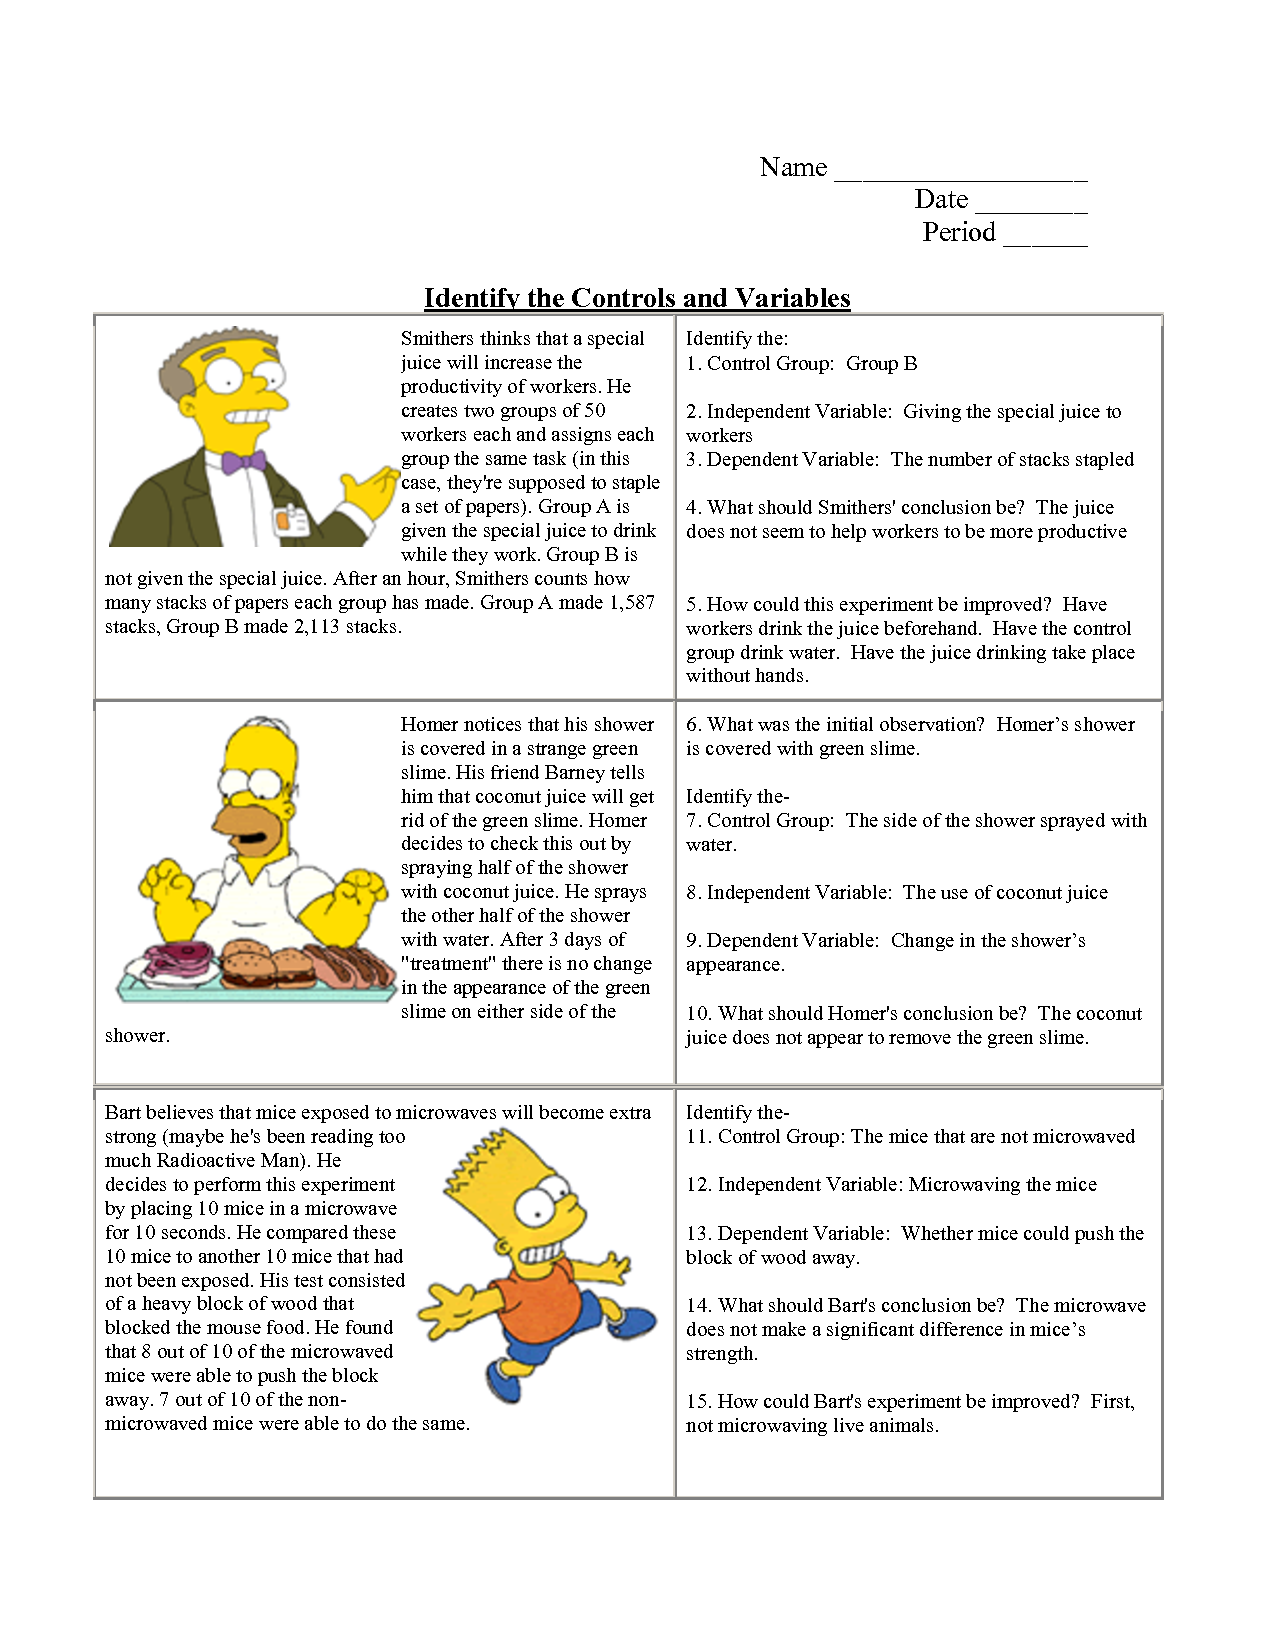 Identifying Variables Worksheet Answers | scientific ...